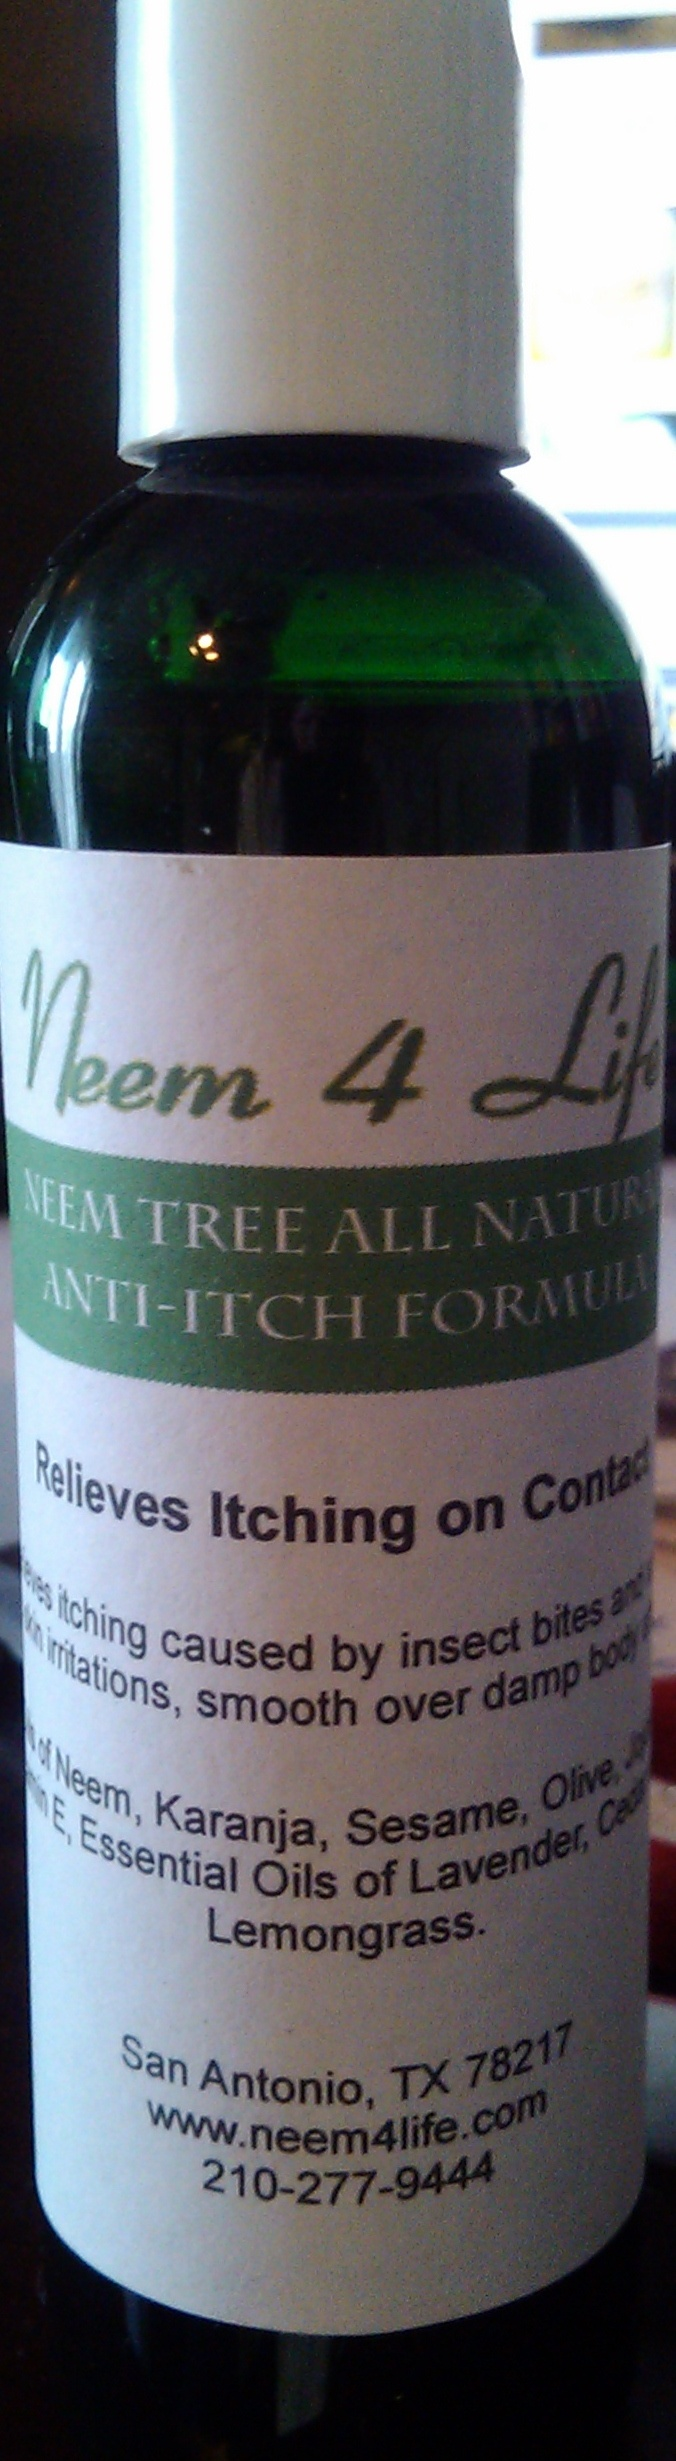 The Amazing Neem Anti Itch Formula  Whatever Is making you itch, be it insect bites, skin rashes, alergies, etc...This Neem Product will Stop that Itch, Relieve that Irritation, and Protect you.  Long lasting And NATURAL...MADE FROM NATURES AMAZING NEEM TREE....